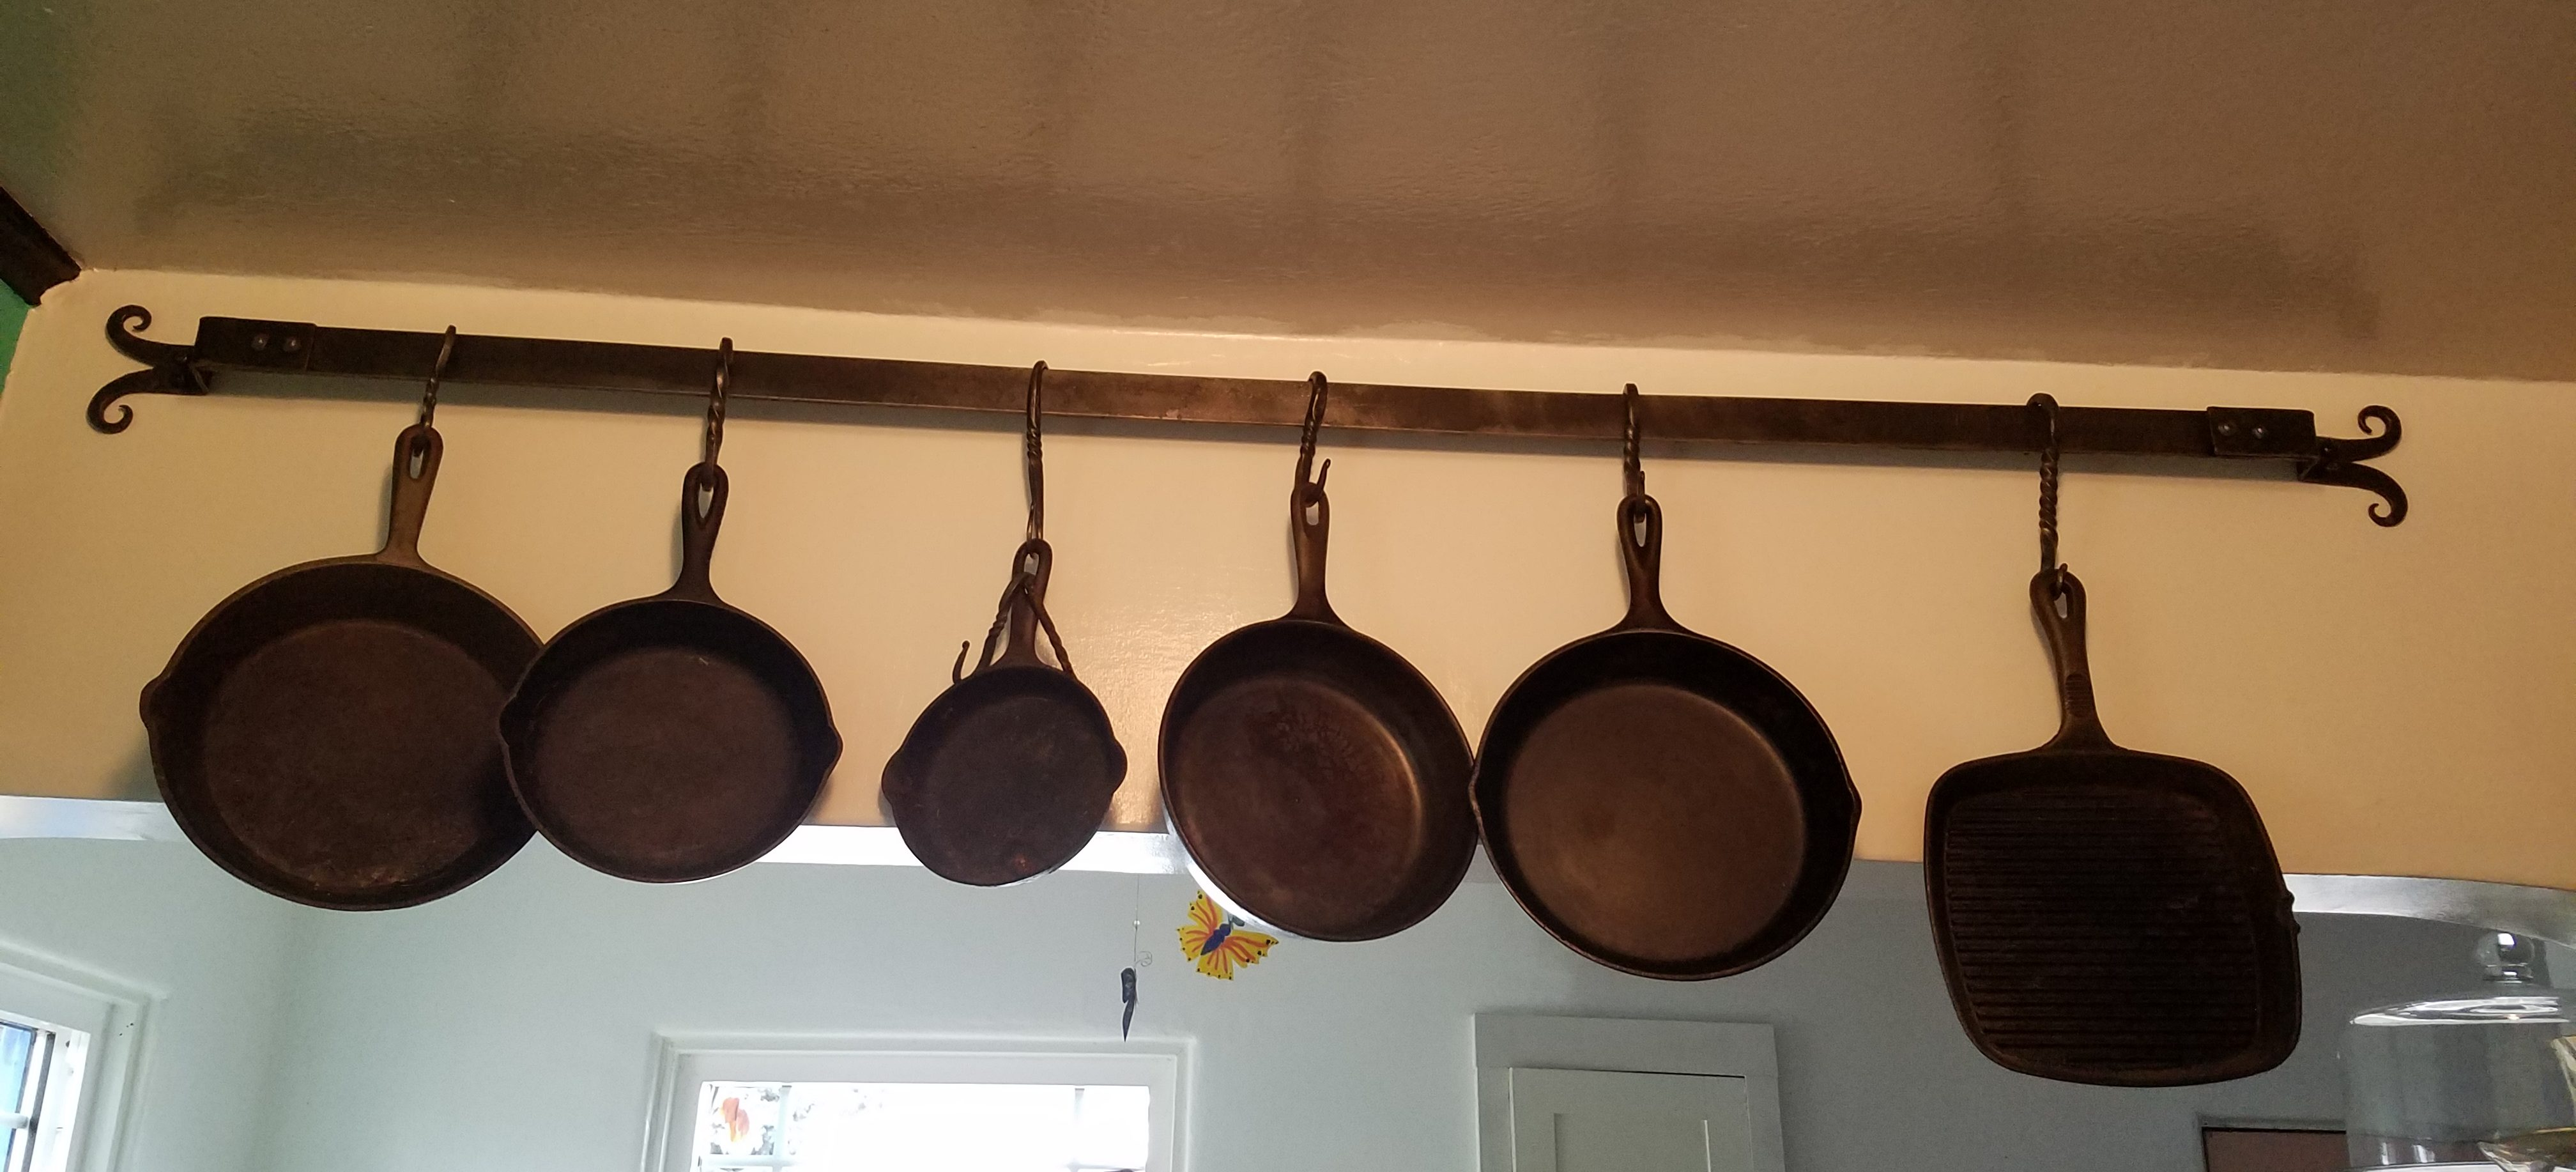 Finished pot rack.